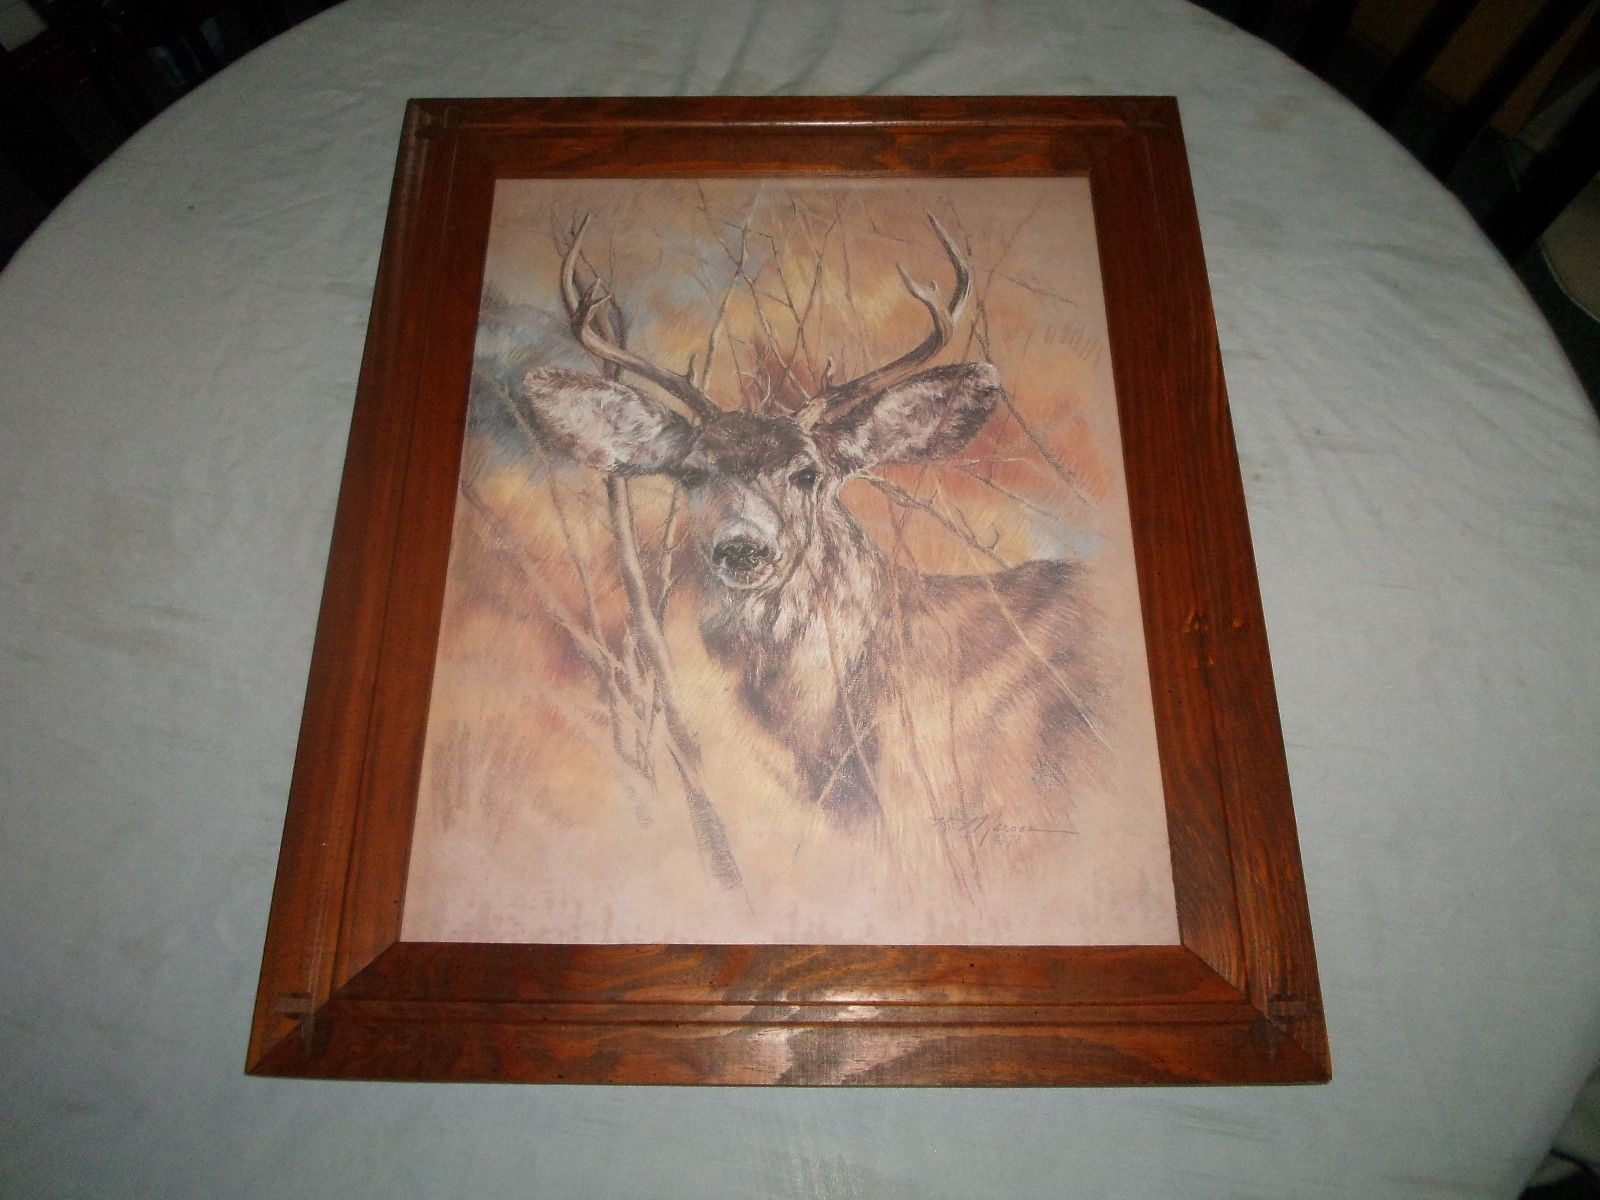 vintage home interior framed picture buck deer buck deer home interior deer pictures shop collectibles online daily